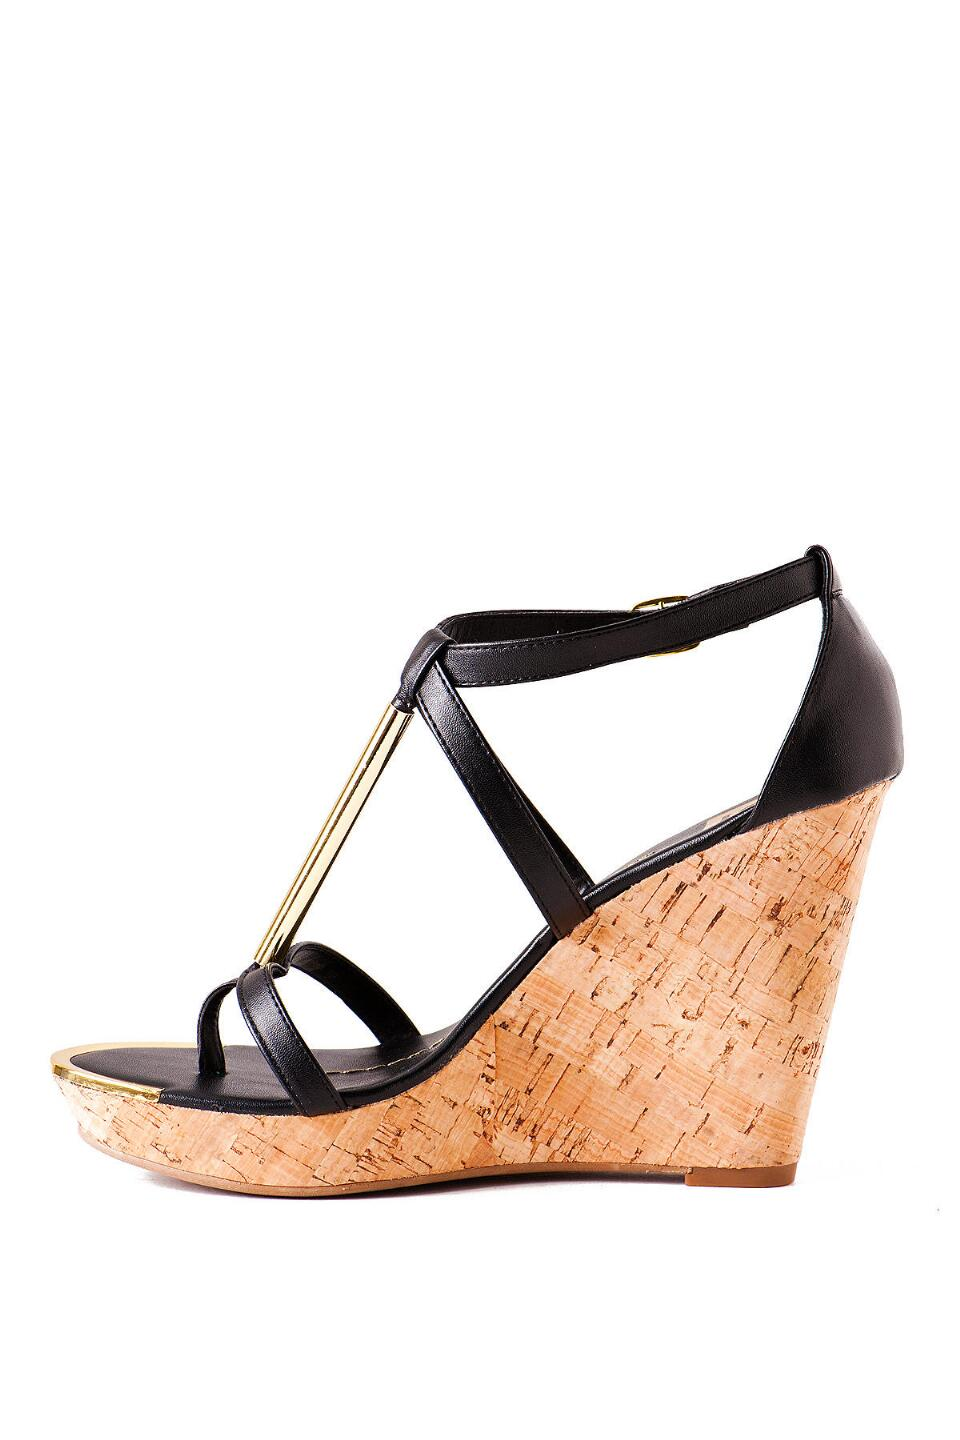 DV by Dolce Vita Shoes, Tremor Cork Wedge in Black-  blk-clleft